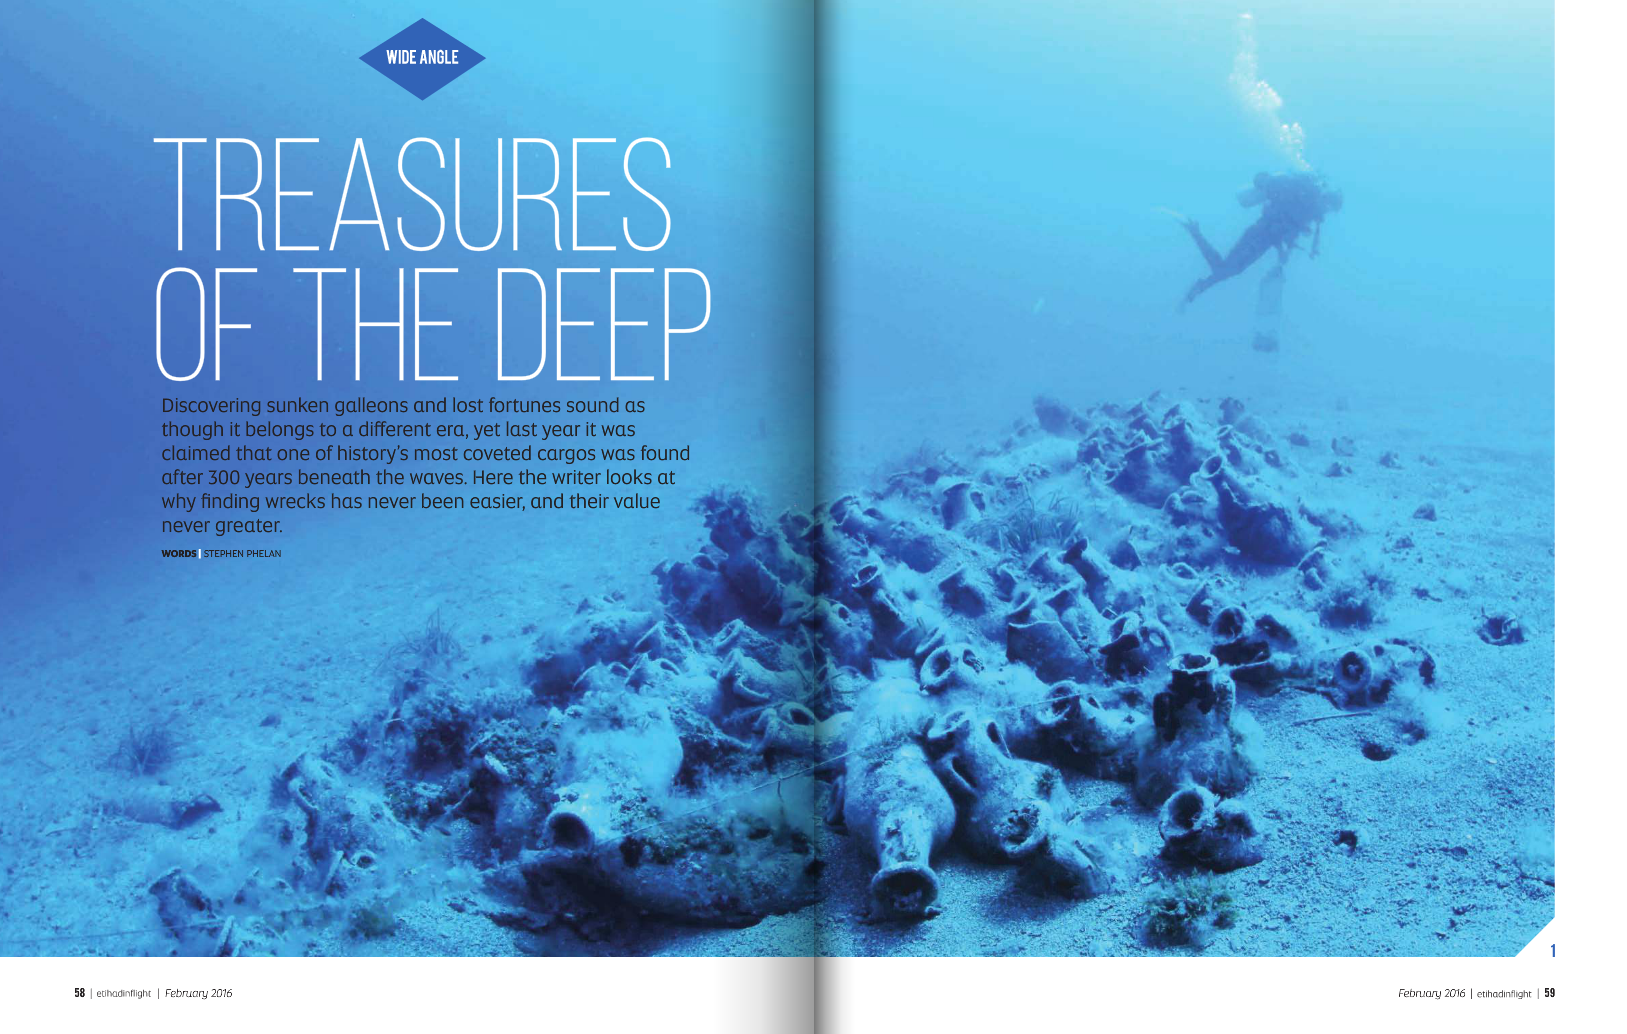 Treasures of the Deep Etihad magazine spread